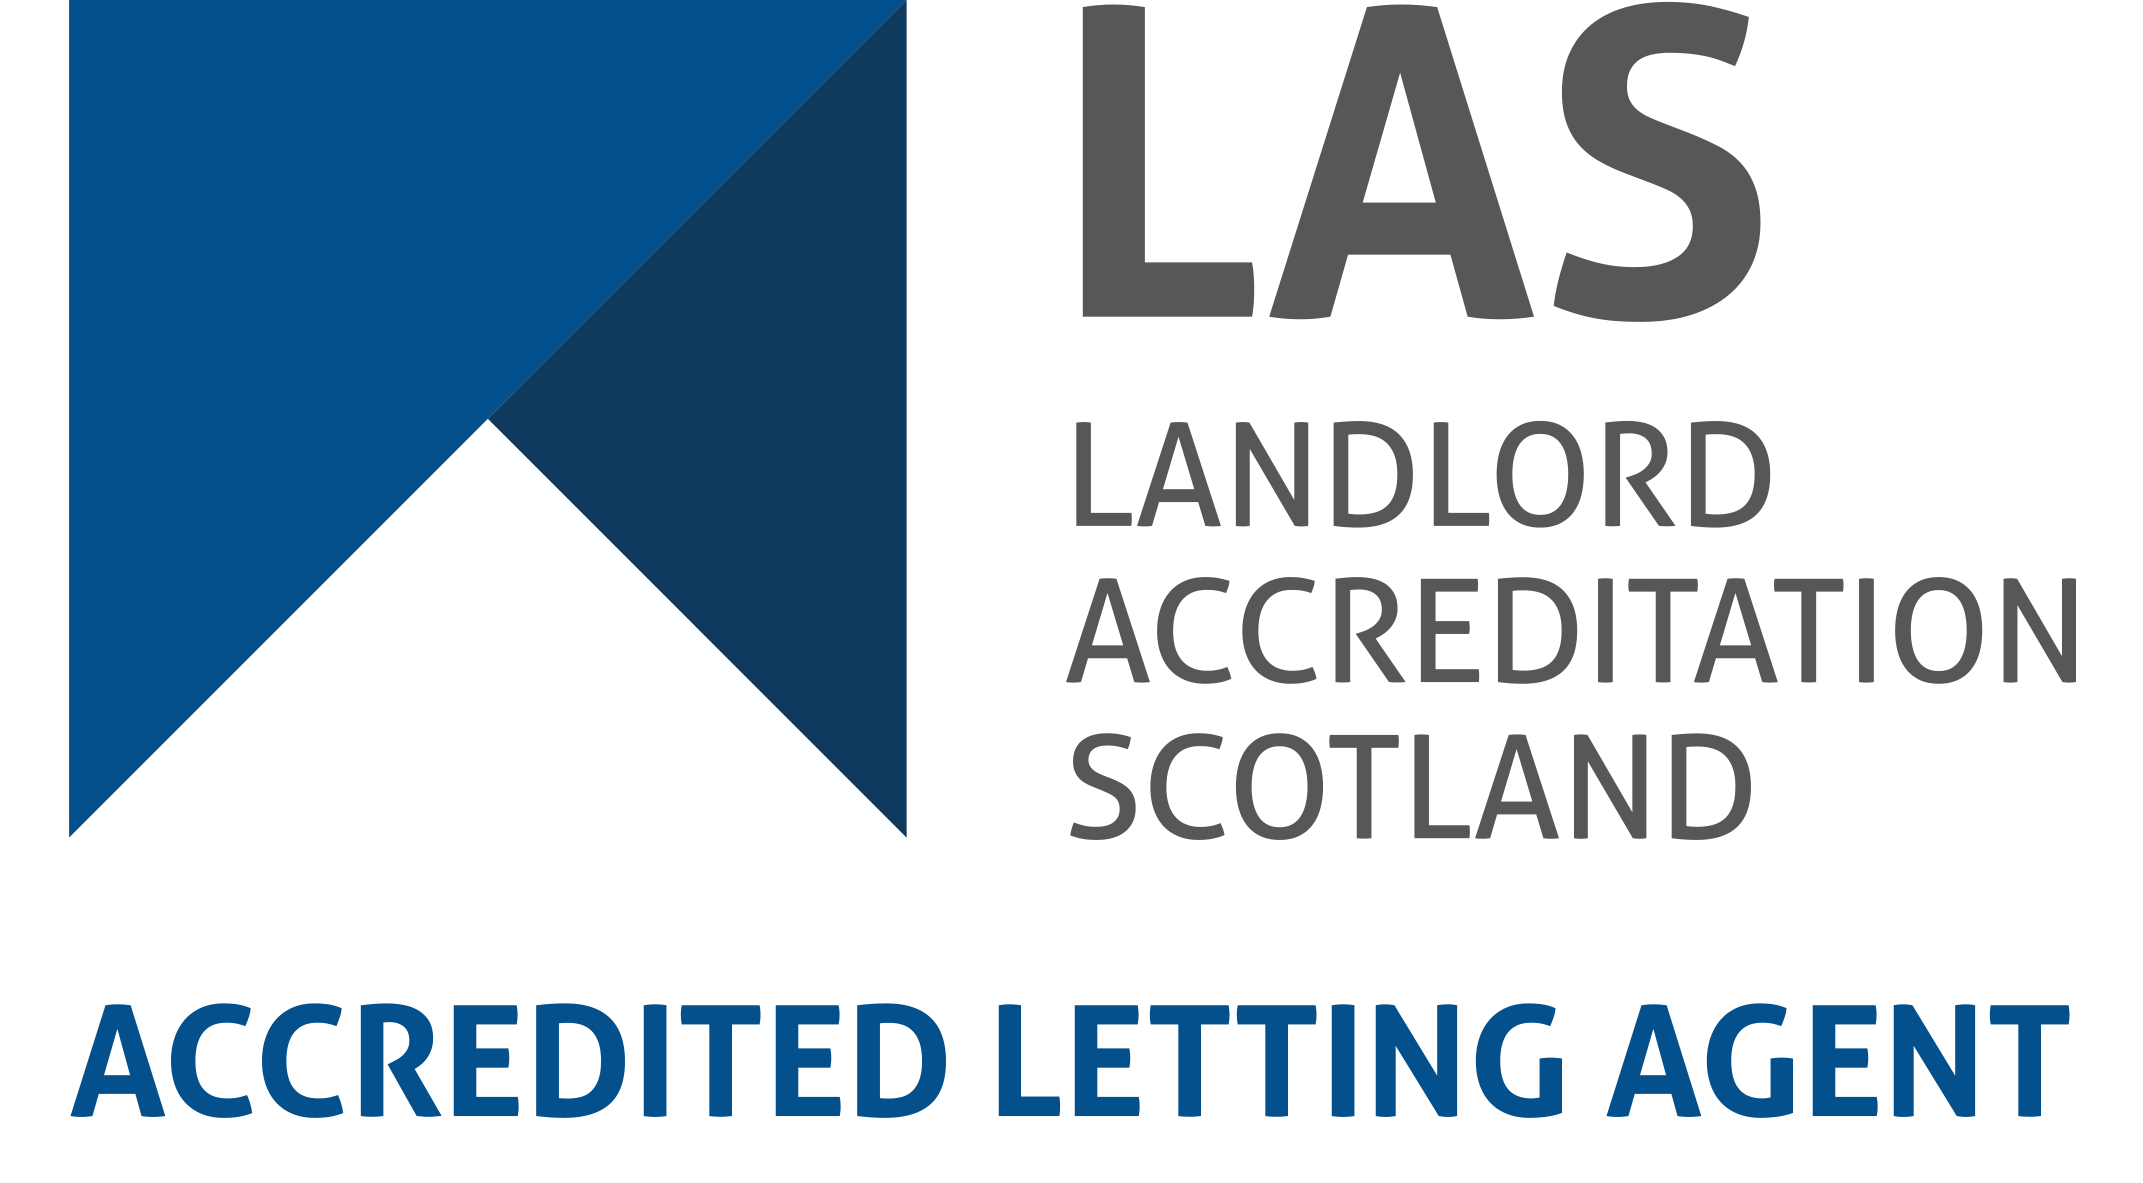 LAS Landlord Accreditation Scotland logo